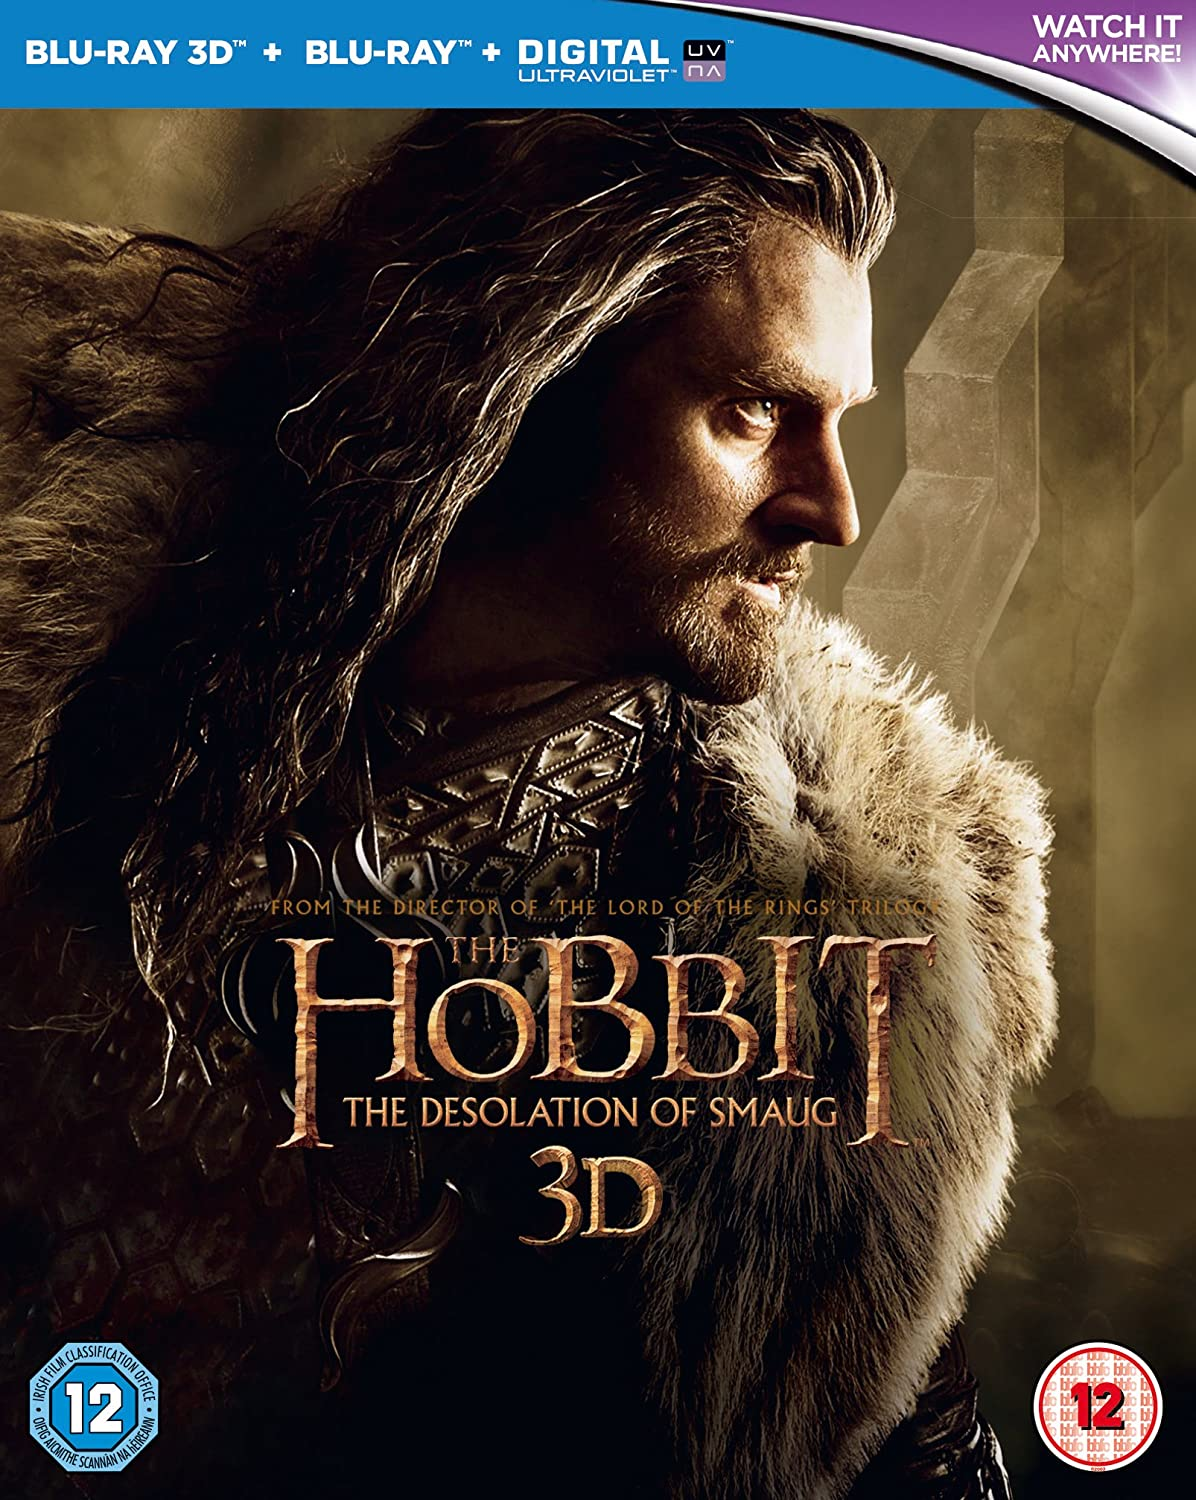 Amazon Com The Hobbit The Desolation Of Smaug Blu Ray 3d Blu Ray Uv Copy 2013 Region Free Martin Freeman Movies Tv